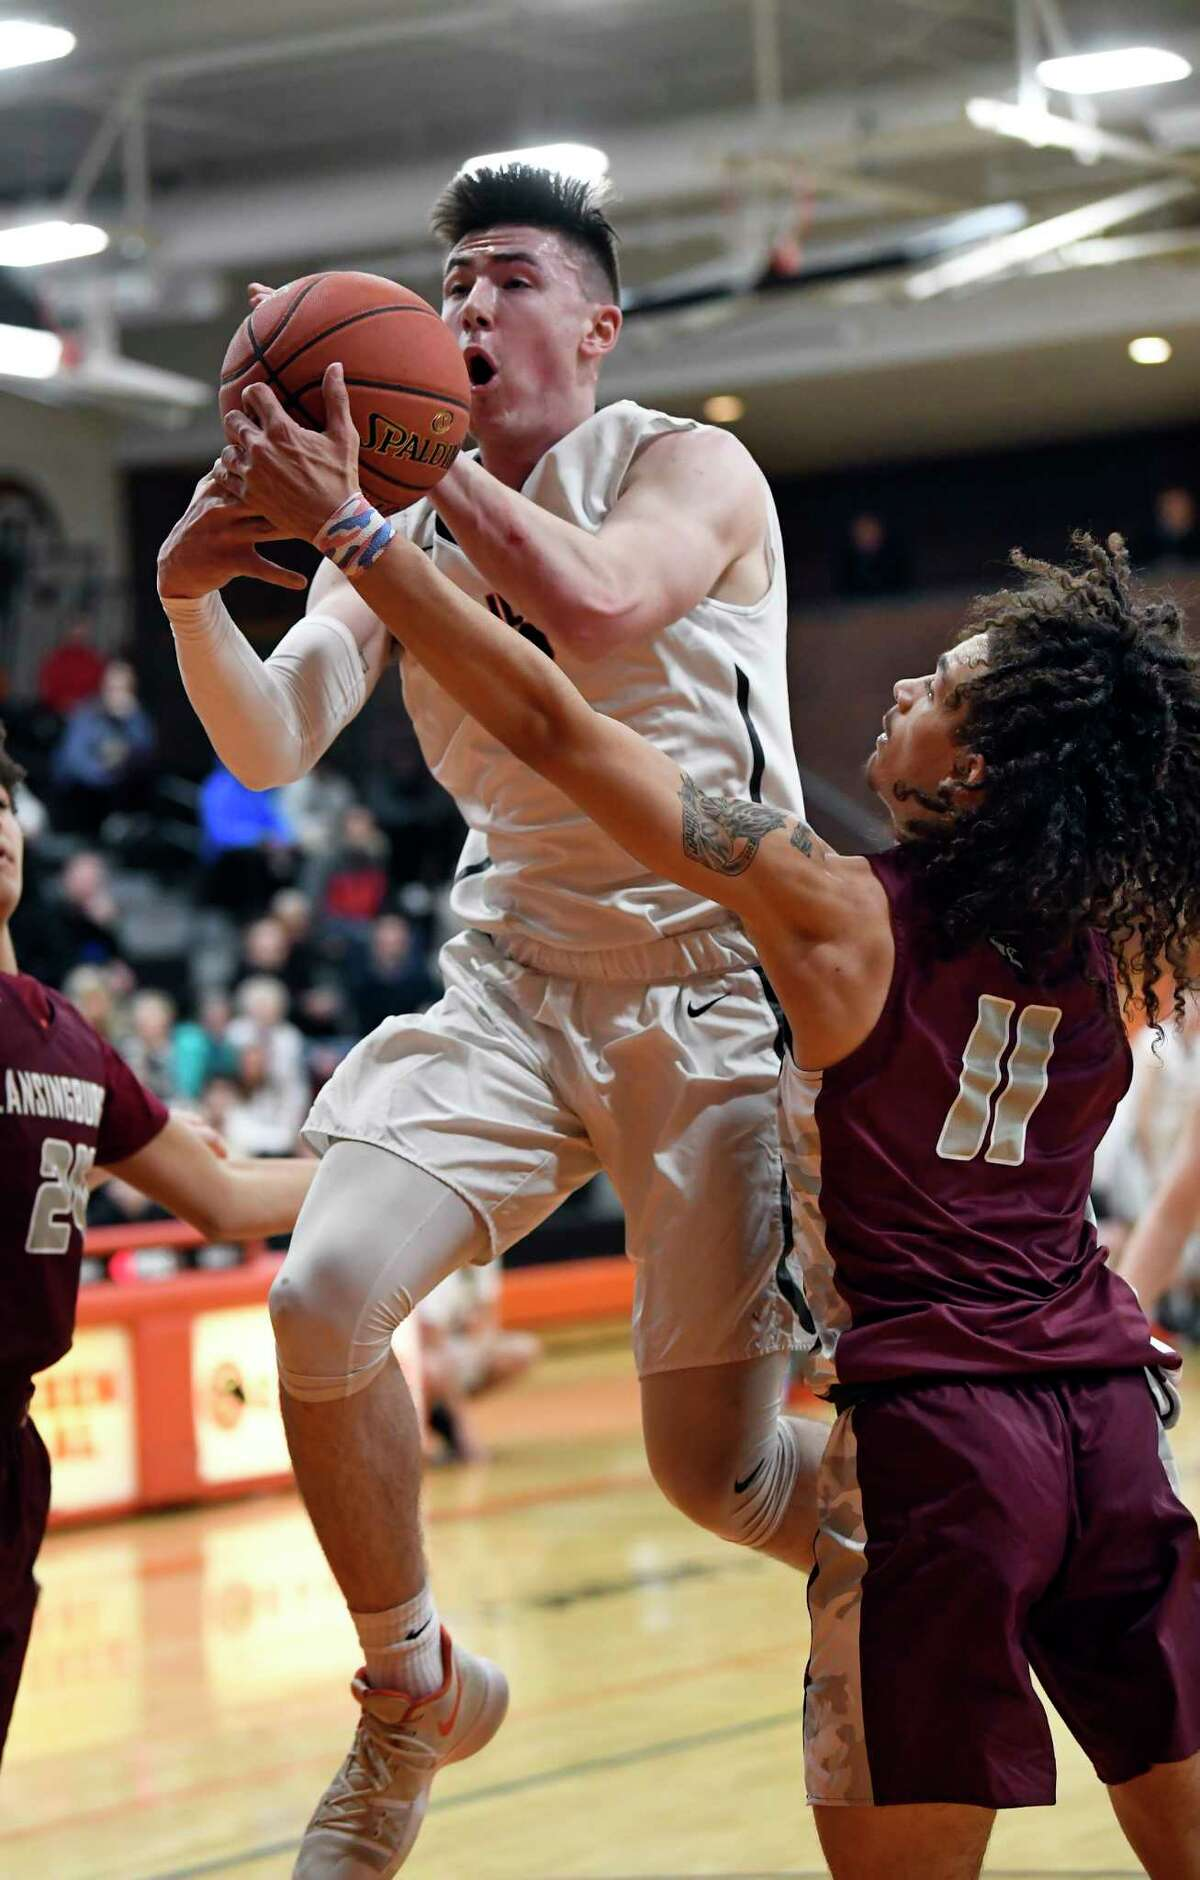 Bethlehem's Michael Ortale ,left, is defended by Lansingburgh's Trevor Green (11) during the first half of a boys high school basketball game Thursday, Jan. 3, 2019, in Delmar, N.Y. (Hans Pennink / Special to the Times Union)